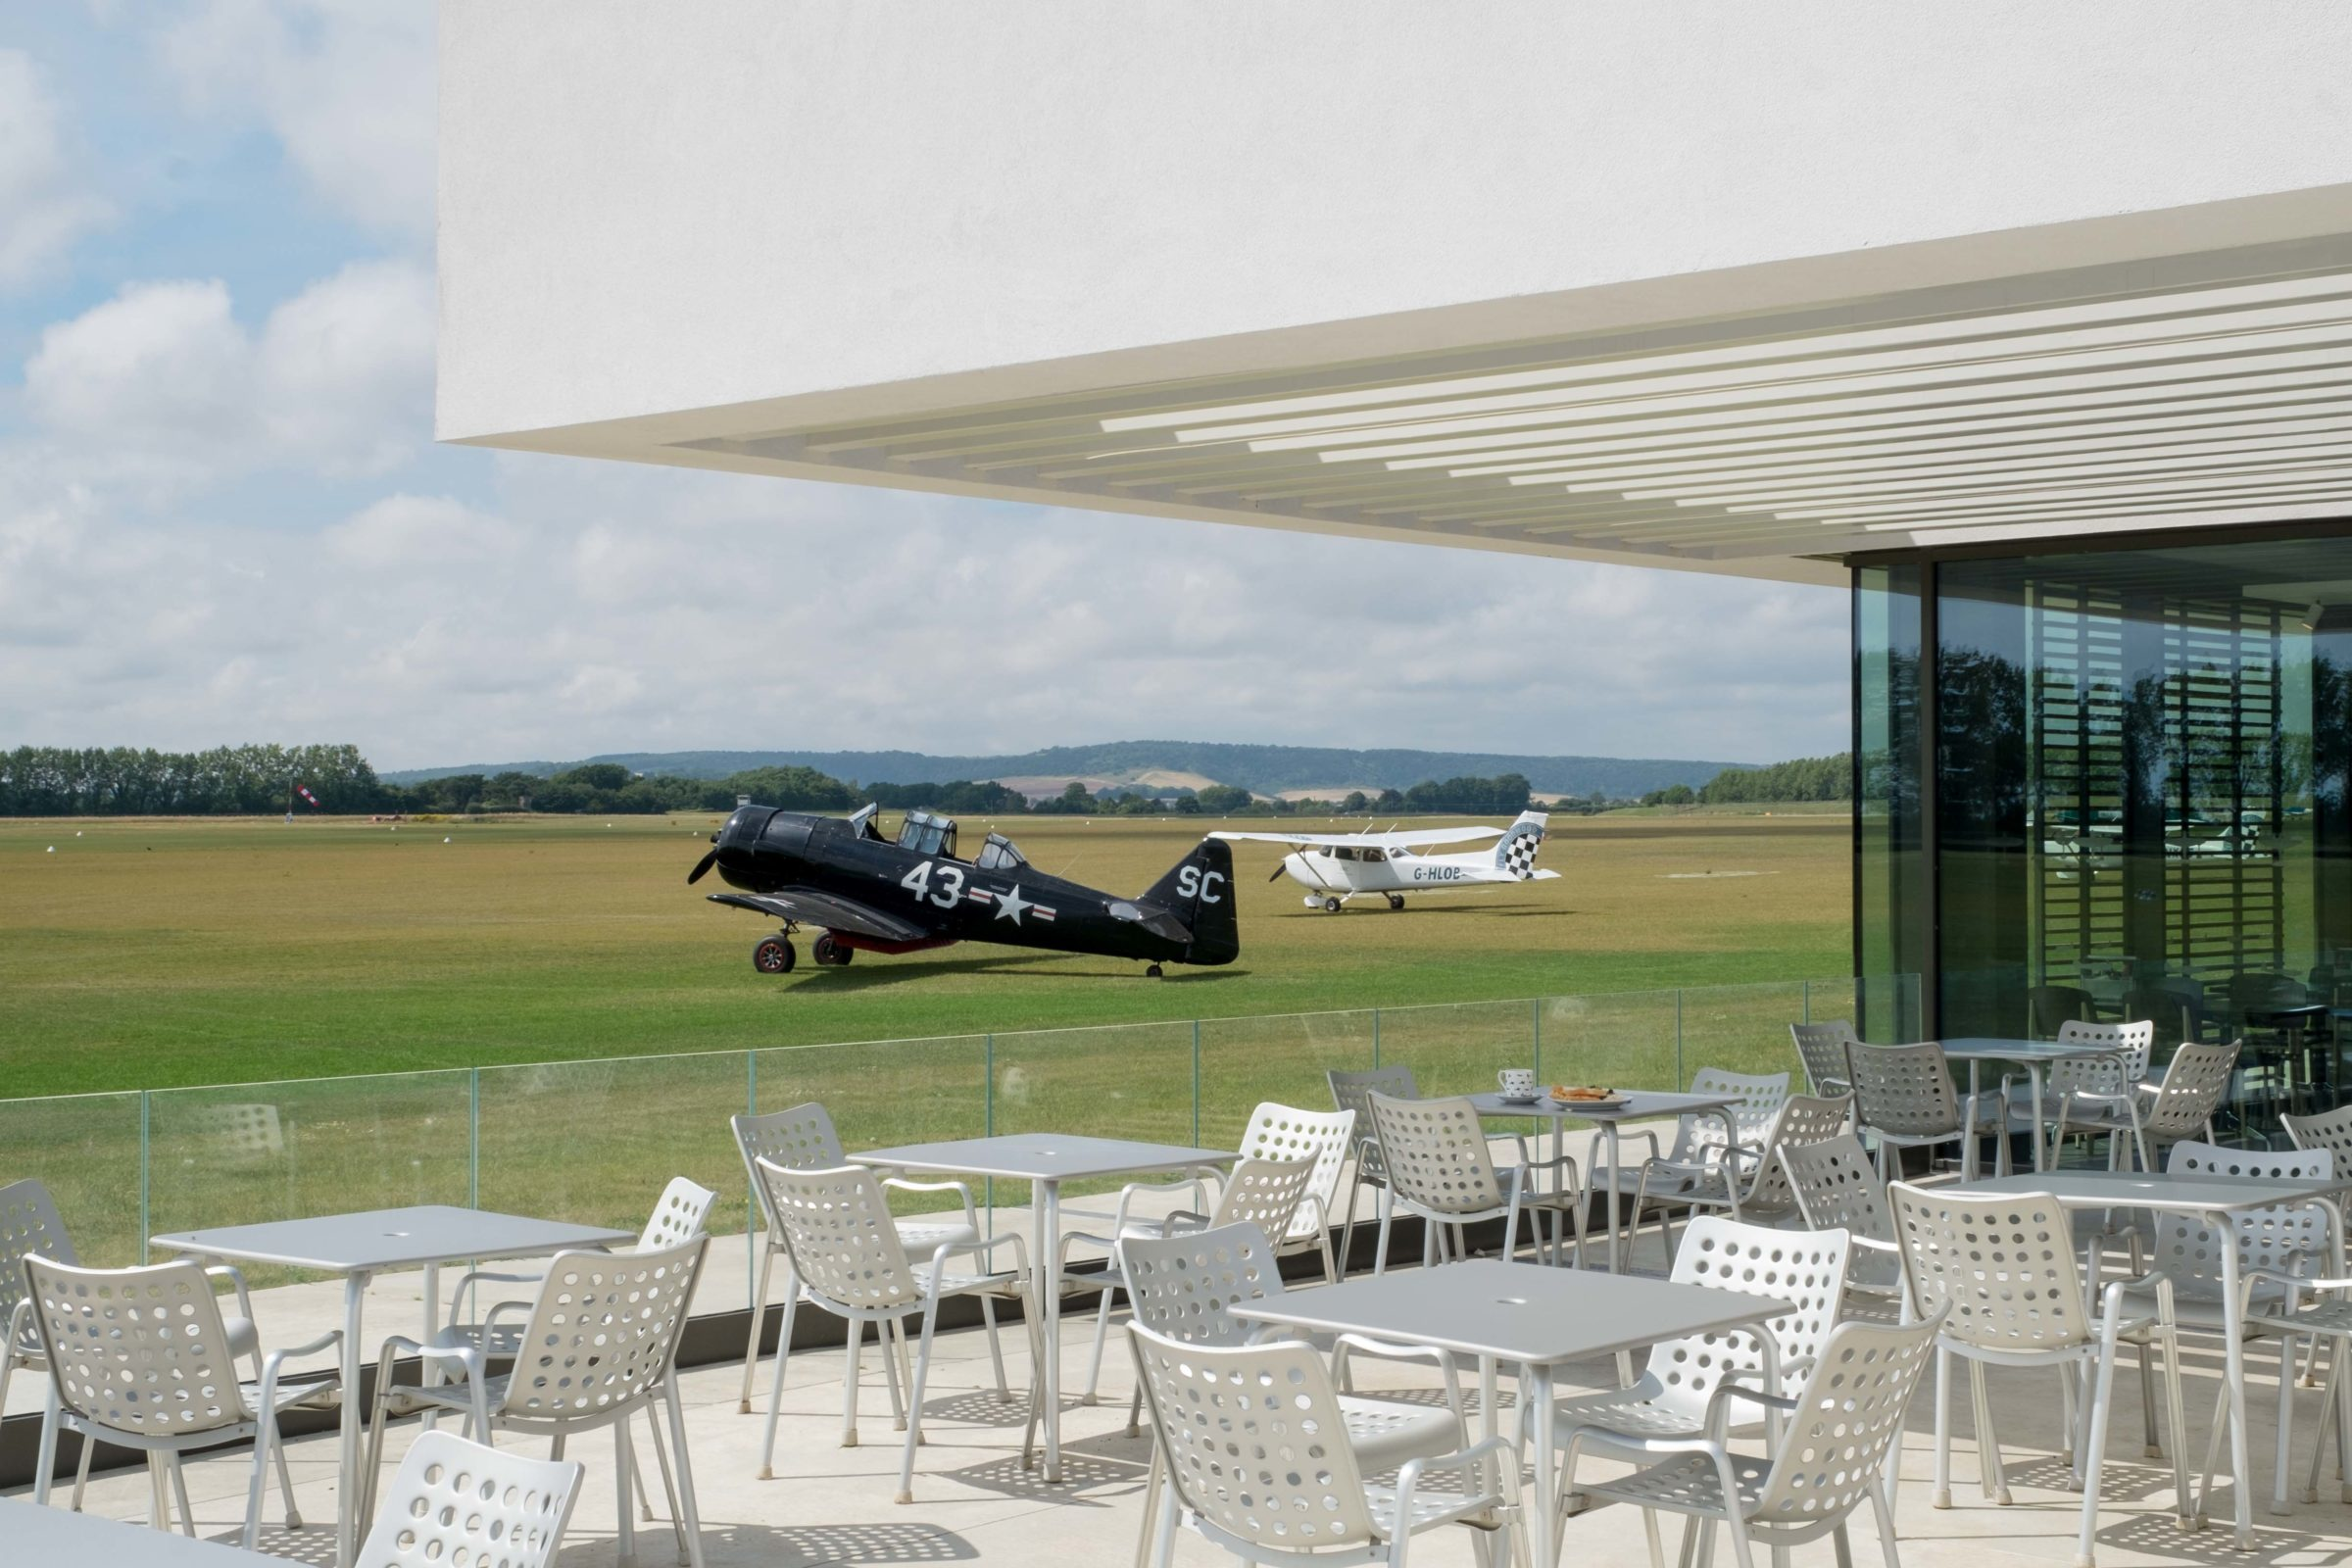 Goodwood Exterior with planes